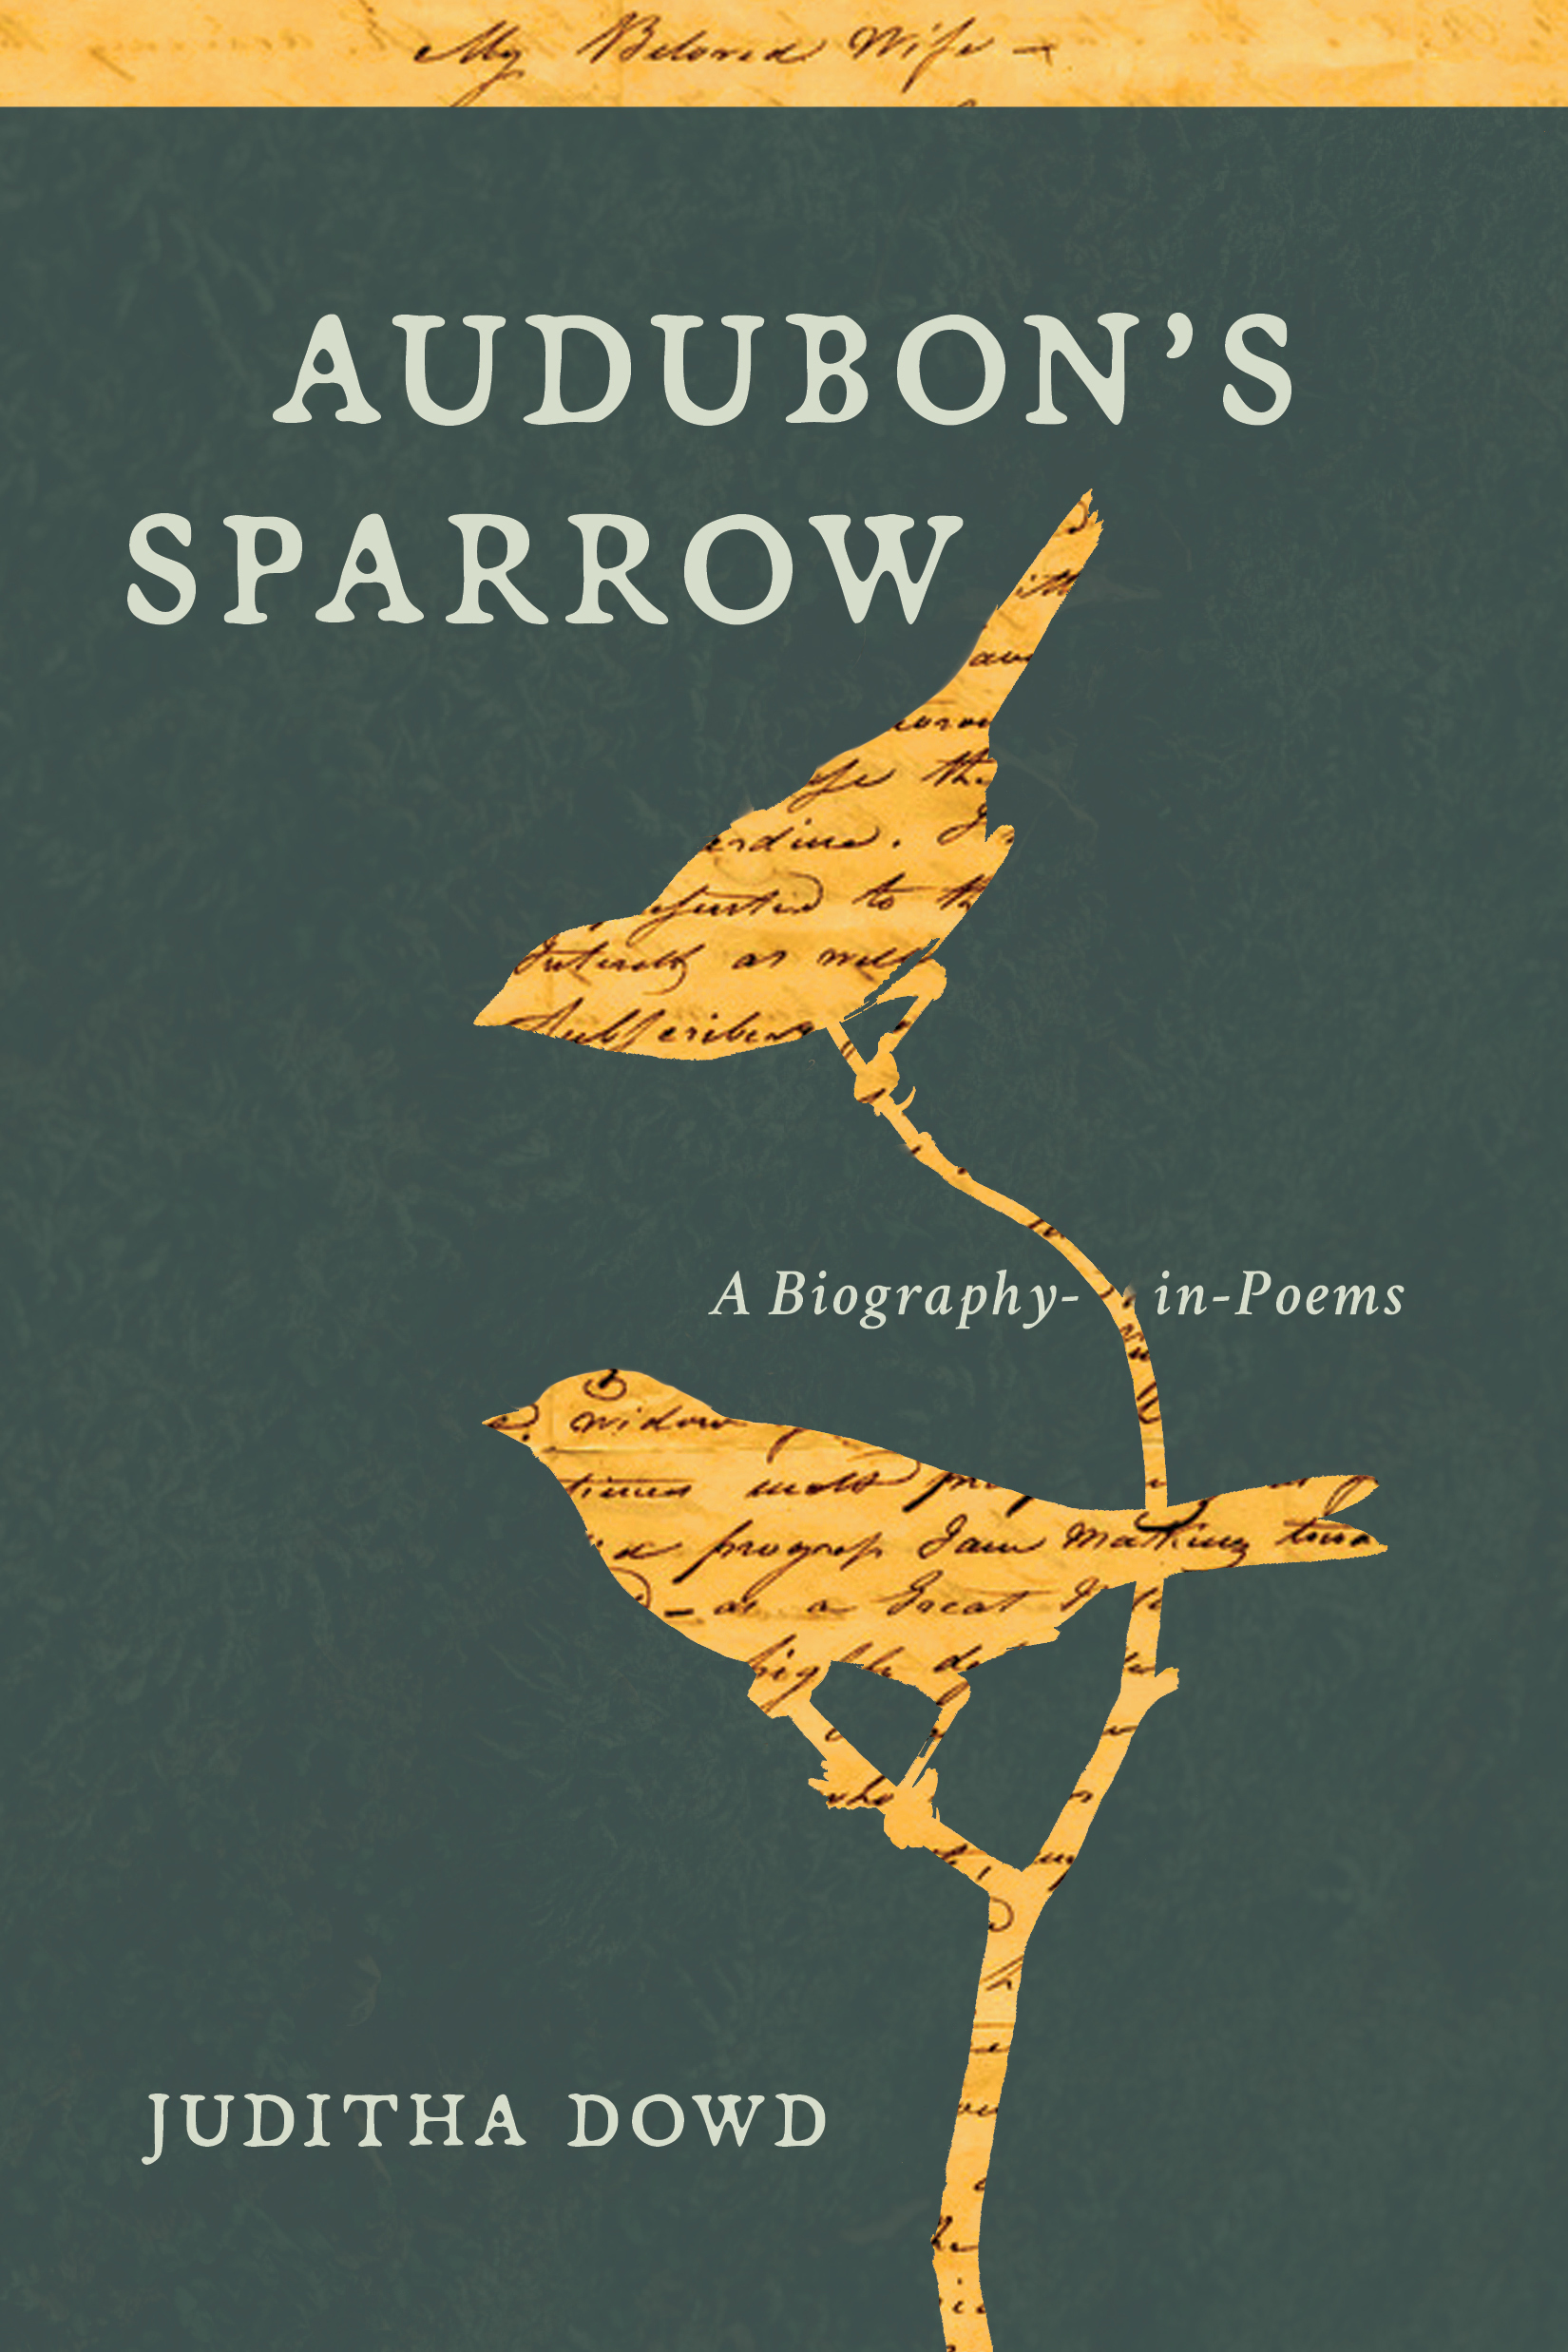 Audubon's Sparrow: A Biography-in-Poems